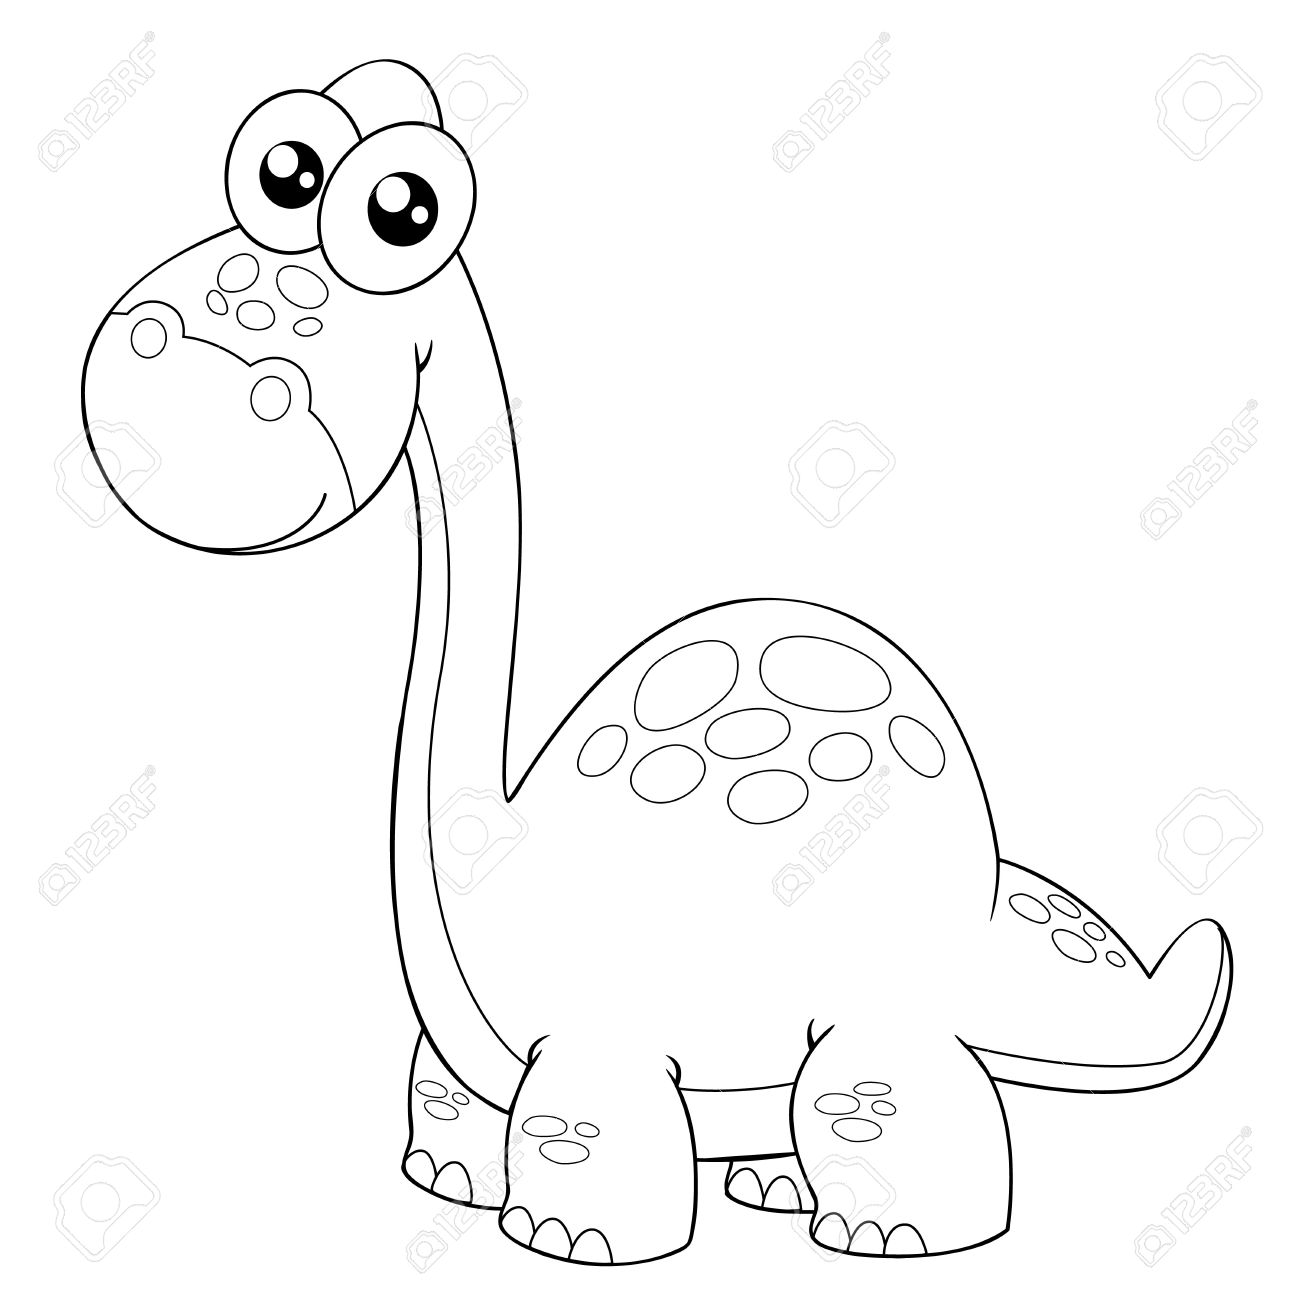 illustration of cartoon dinosaur outline stock vector 16212239